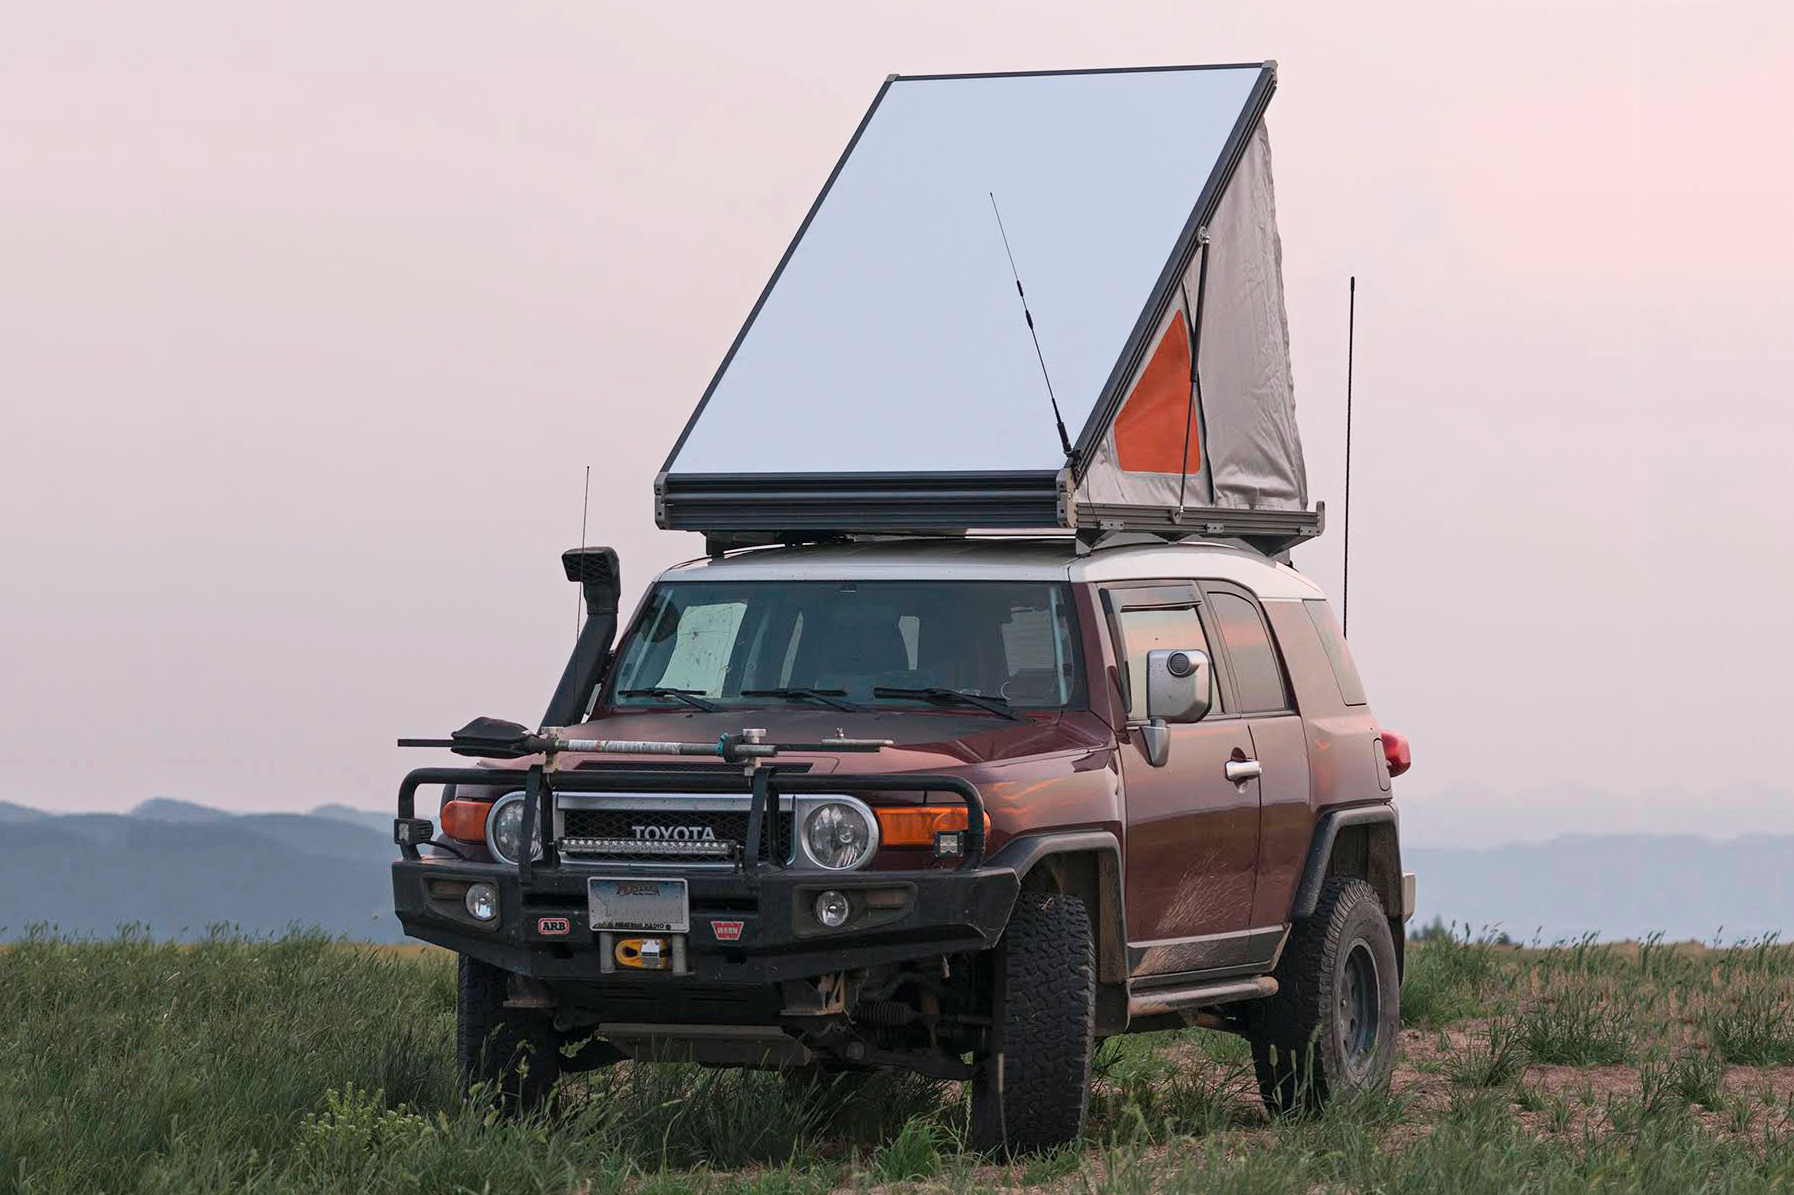 Thinnest Rooftop Tent Go Fast Campers Platform Gets